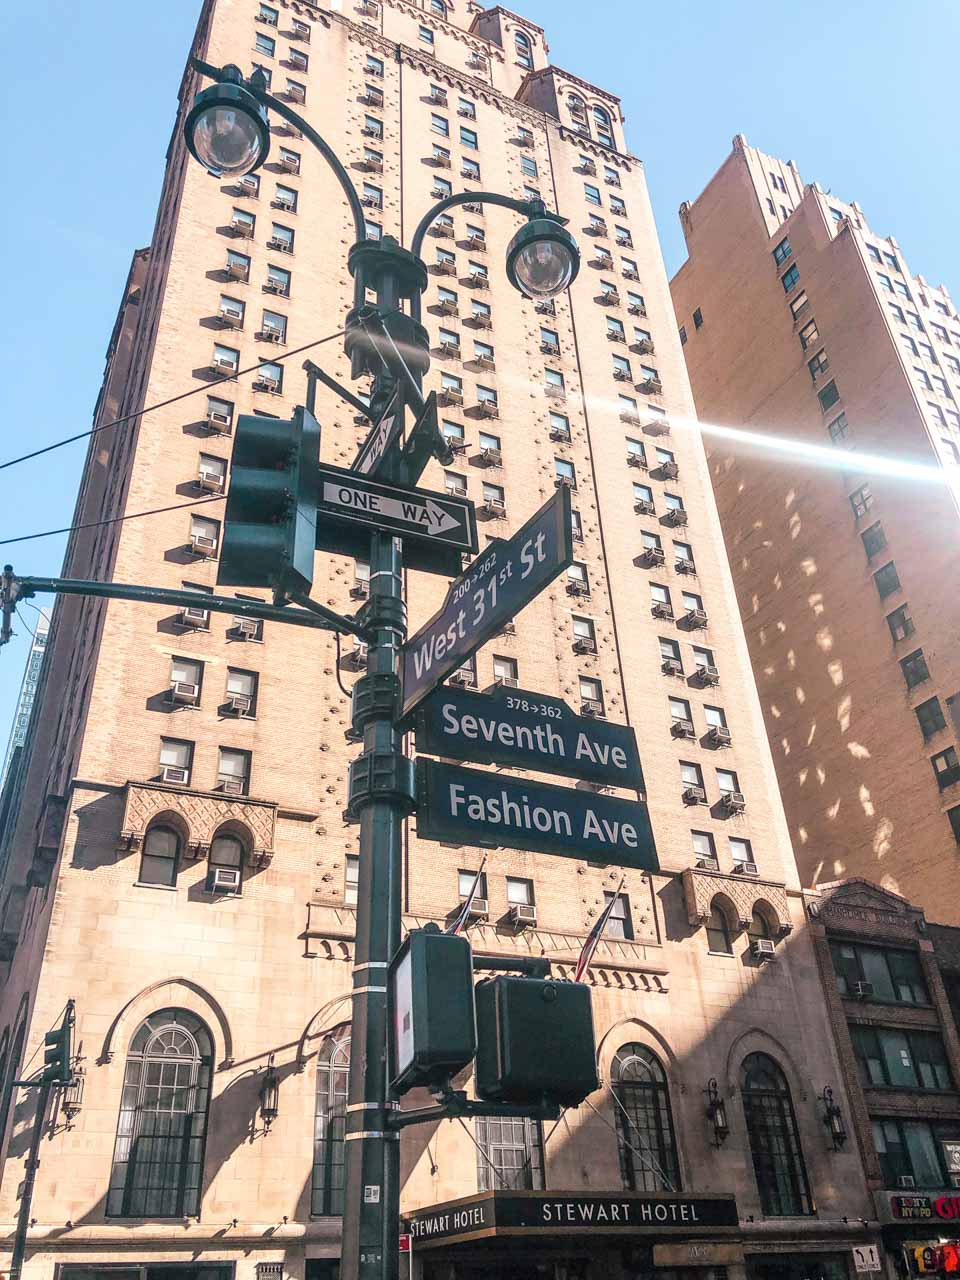 Stewart Hotel in New York City seen from Seventh Avenue, also known as Fashion Avenue